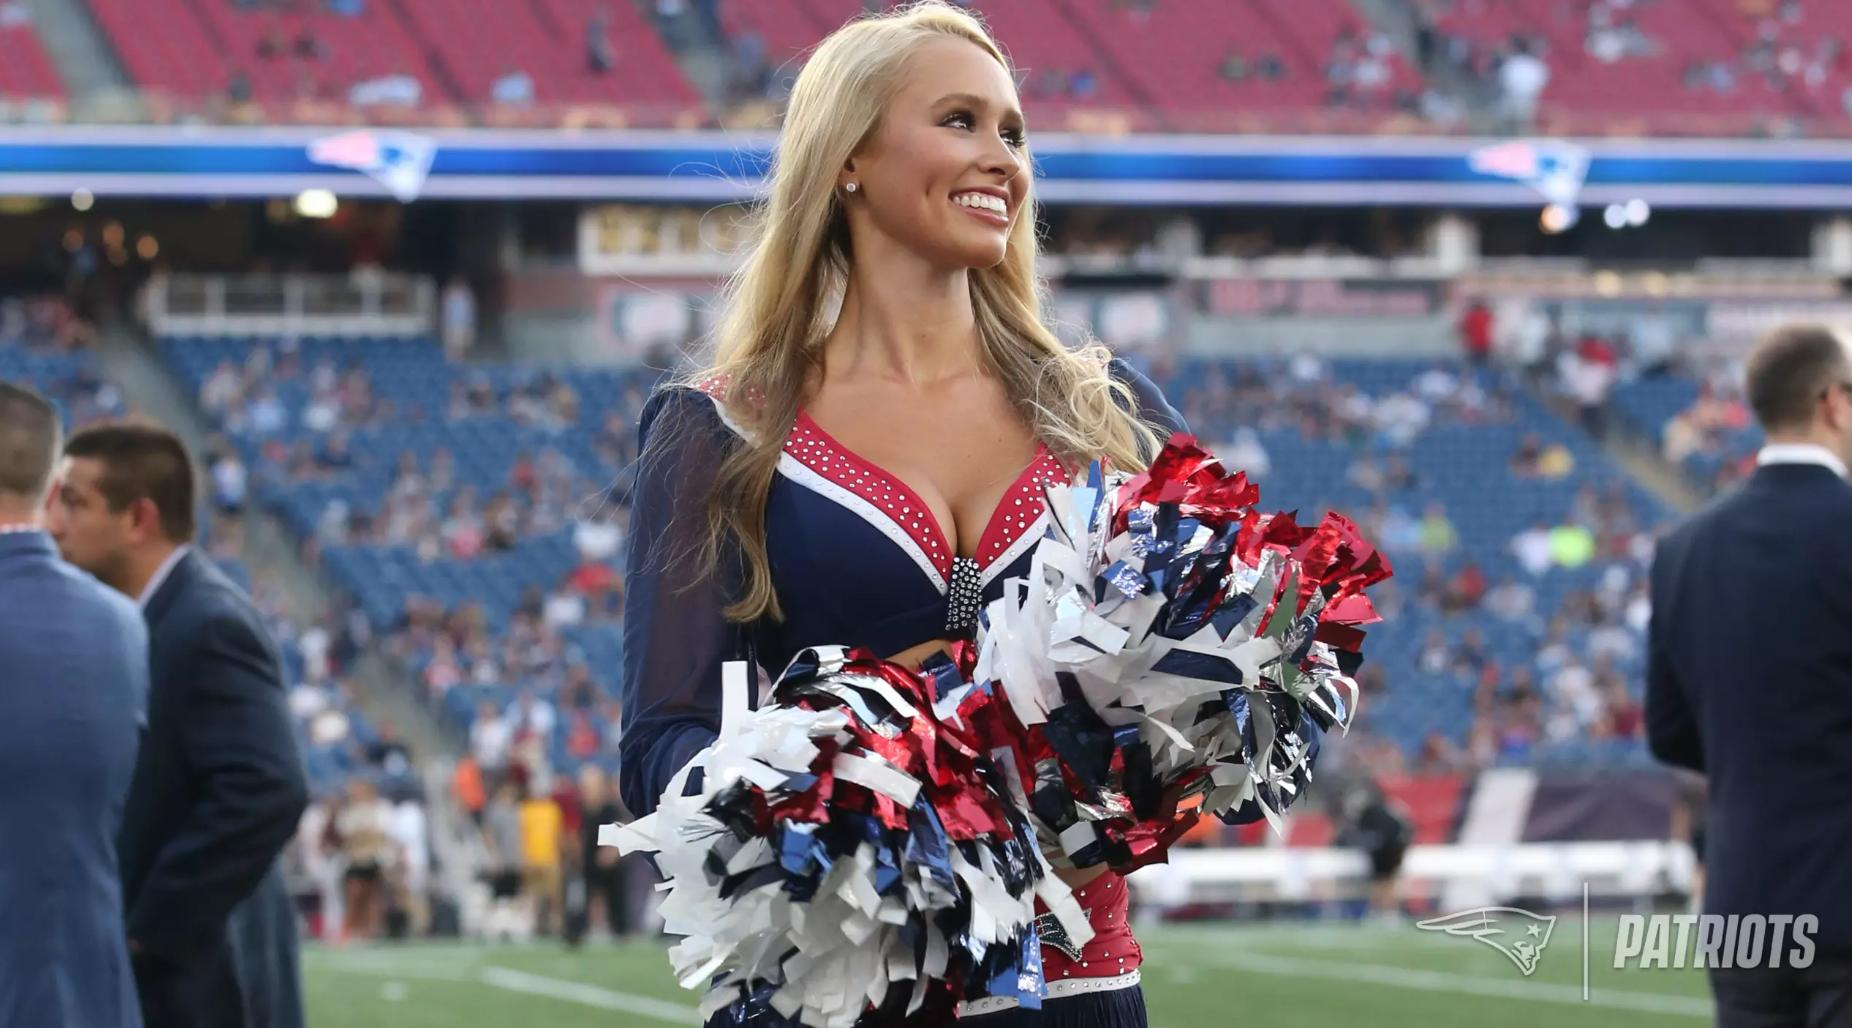 Patriots cheerleader who survived cancer will sing national anthem